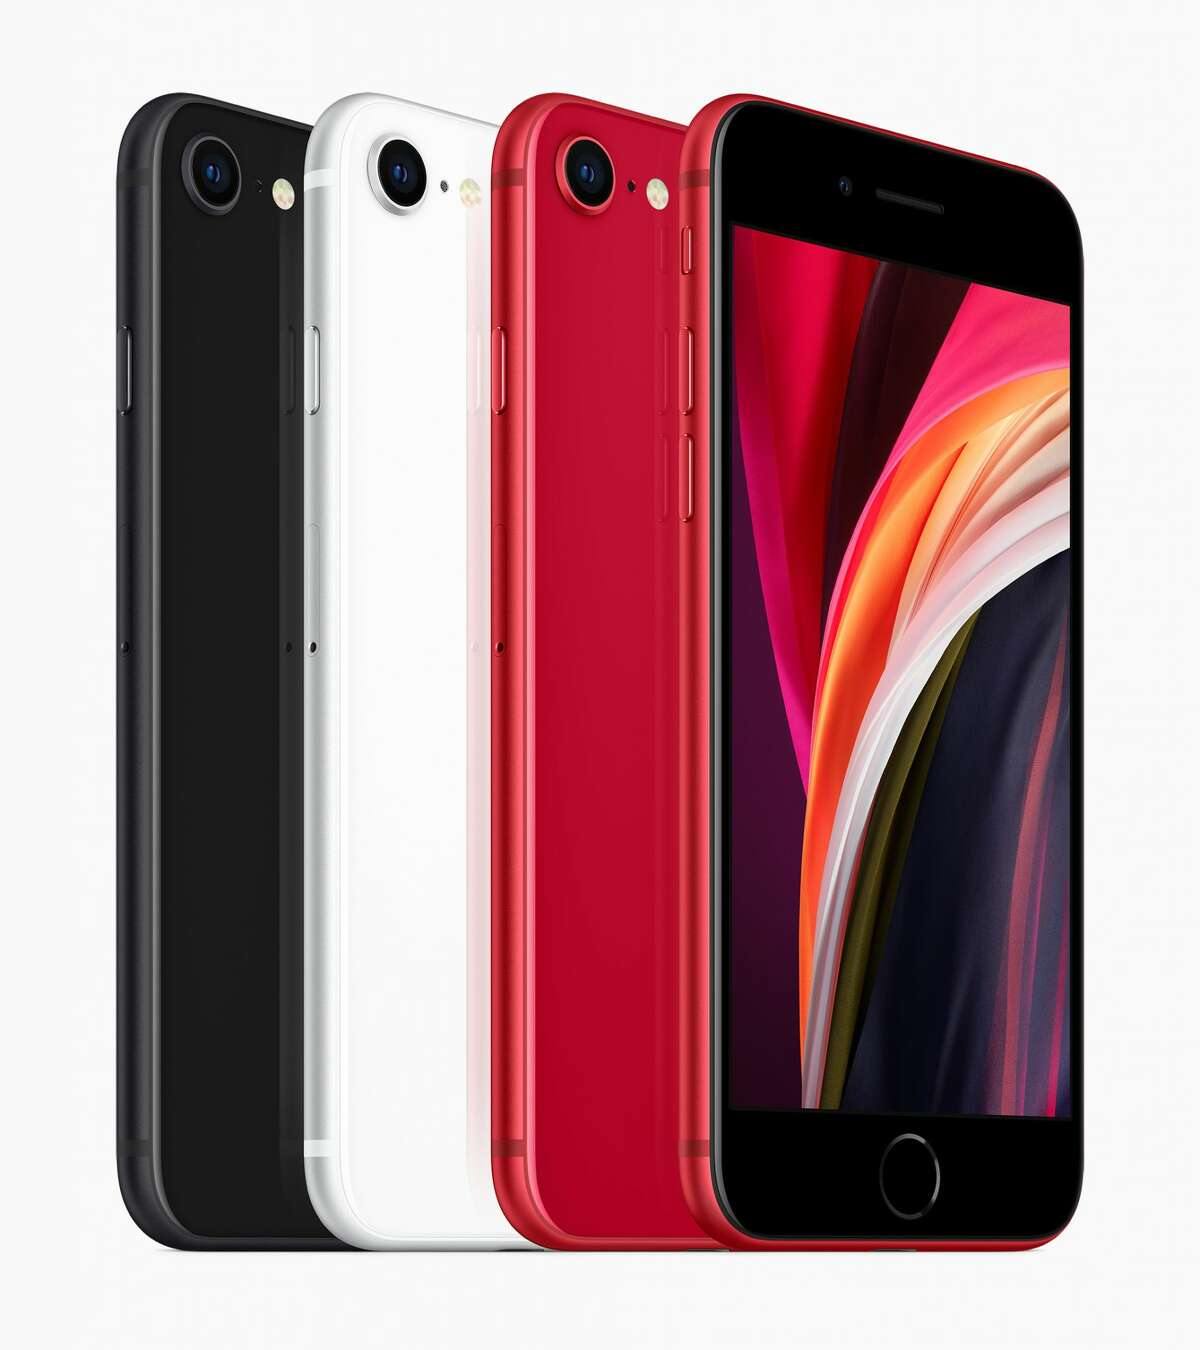 The new, lower-priced iPhone SE come in black, white and red and sells for $399. It's based on the 2014 design of the iPhone 6, but has the internals of modern, 2019 iPhones.